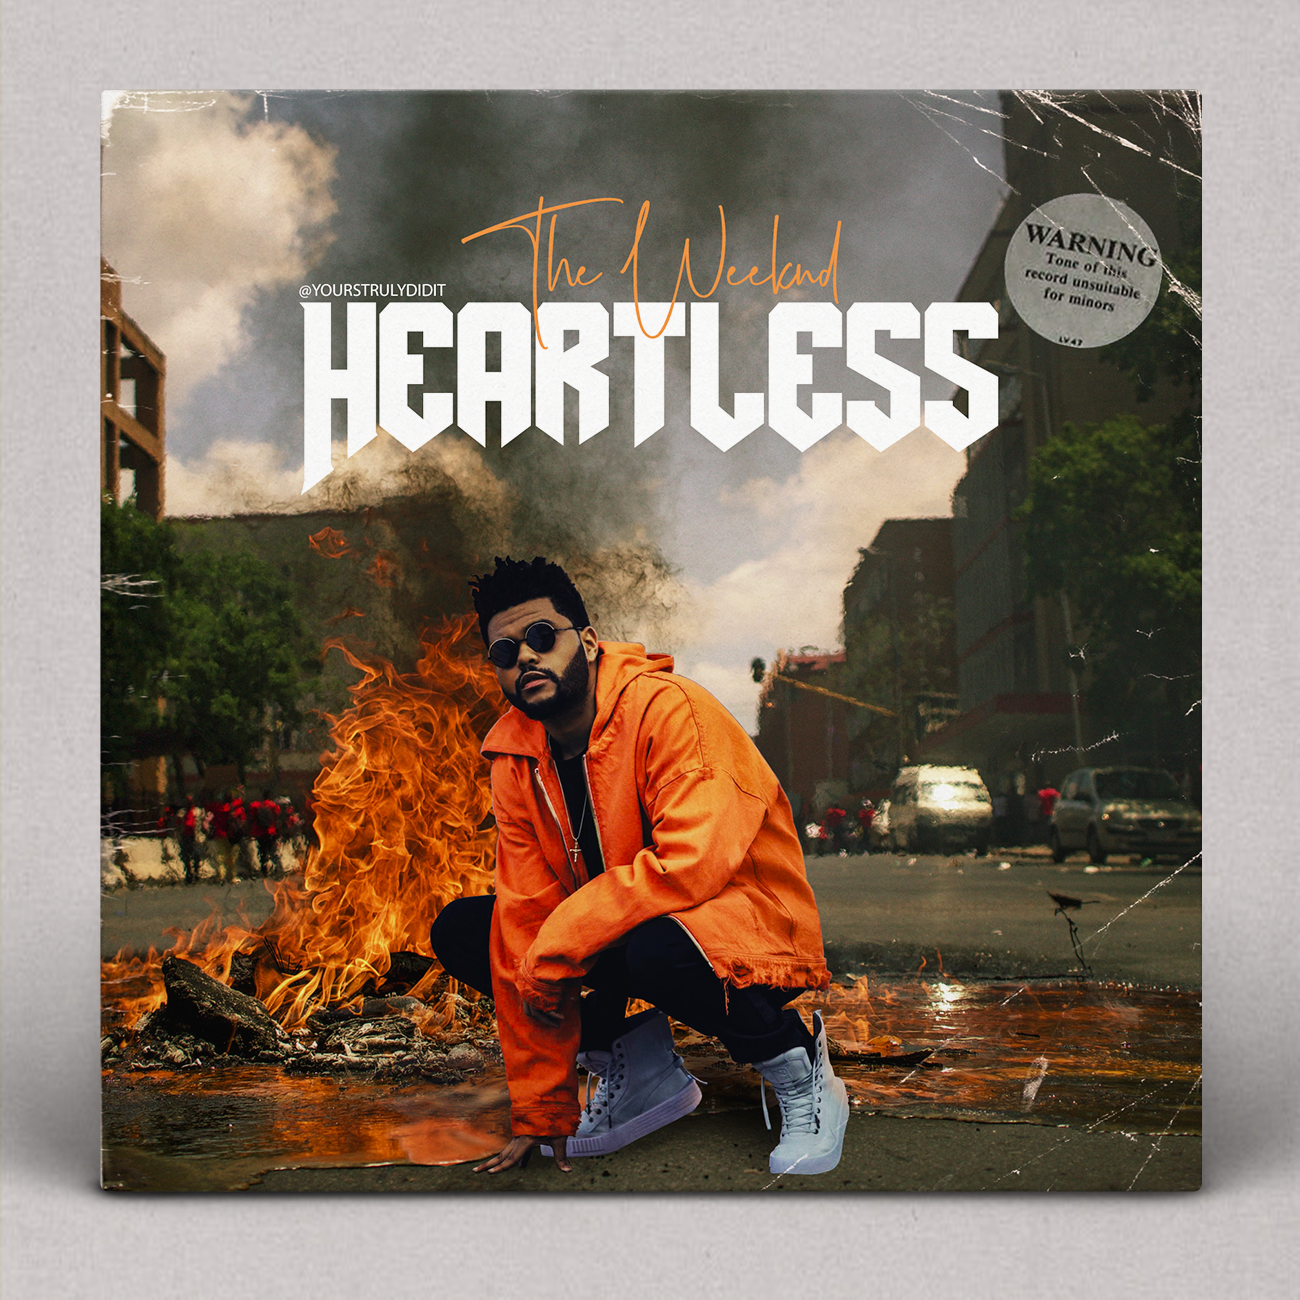 The Weeknd Heartless The weeknd, Album covers, Vsco